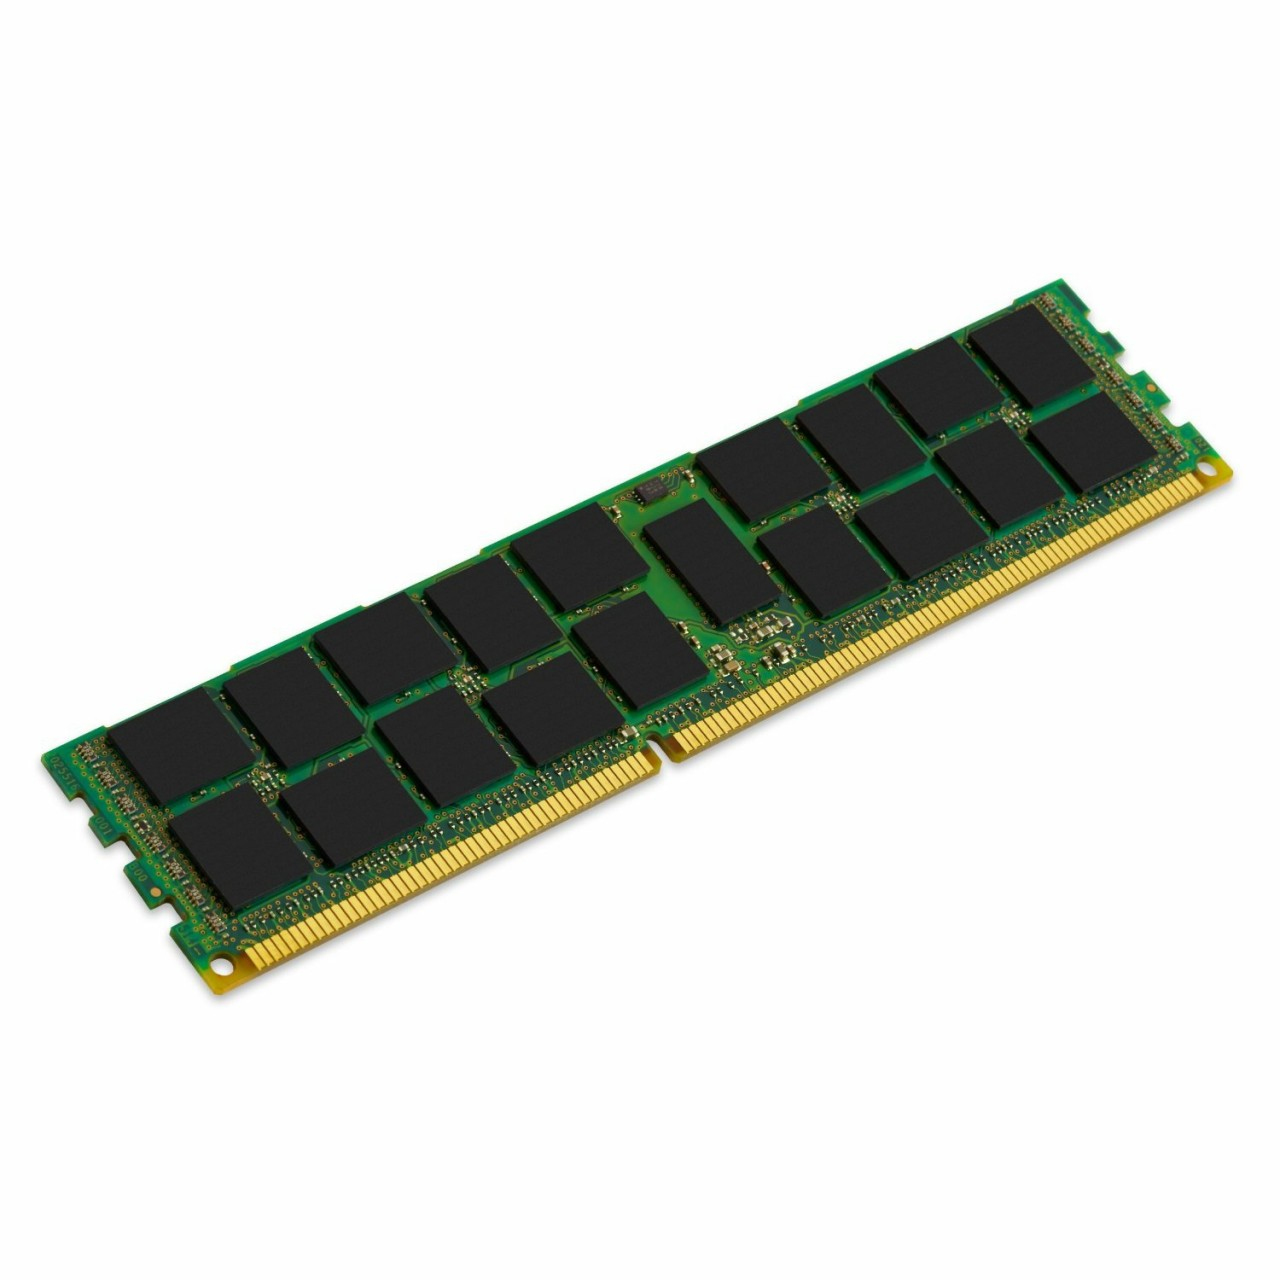 16GB 1866MHz DDR3 ECC Reg CL13 DIMM DR x4 w/TS, KINGSTON Brand (KTD-PE318/16G)